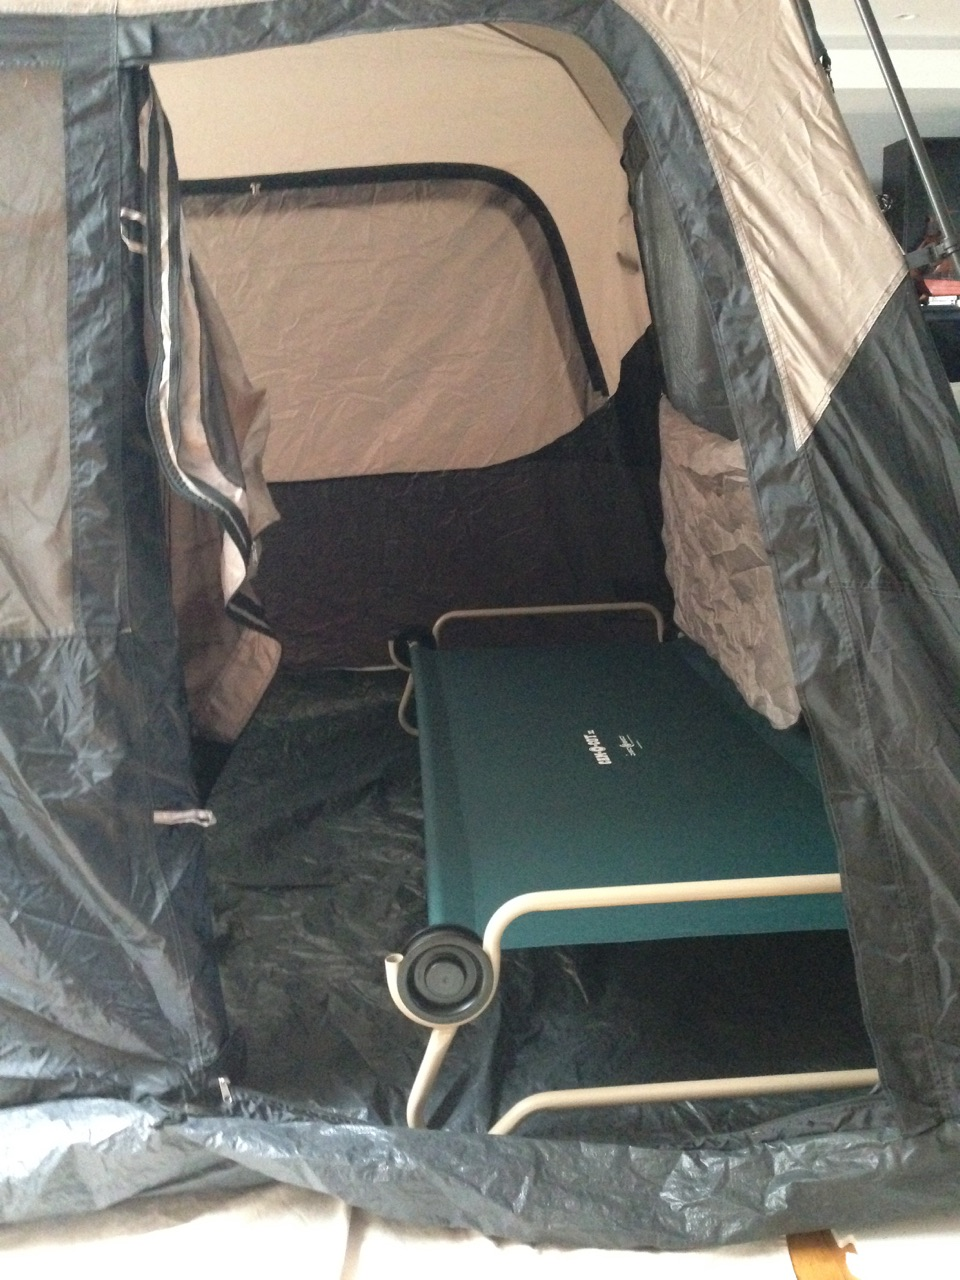 ... C&ing in comfort when you live with chronic pain begin with the bed & Camp Disc-O-Bed Cam-O-Cot XL in tent by door | Really Wonderful Things